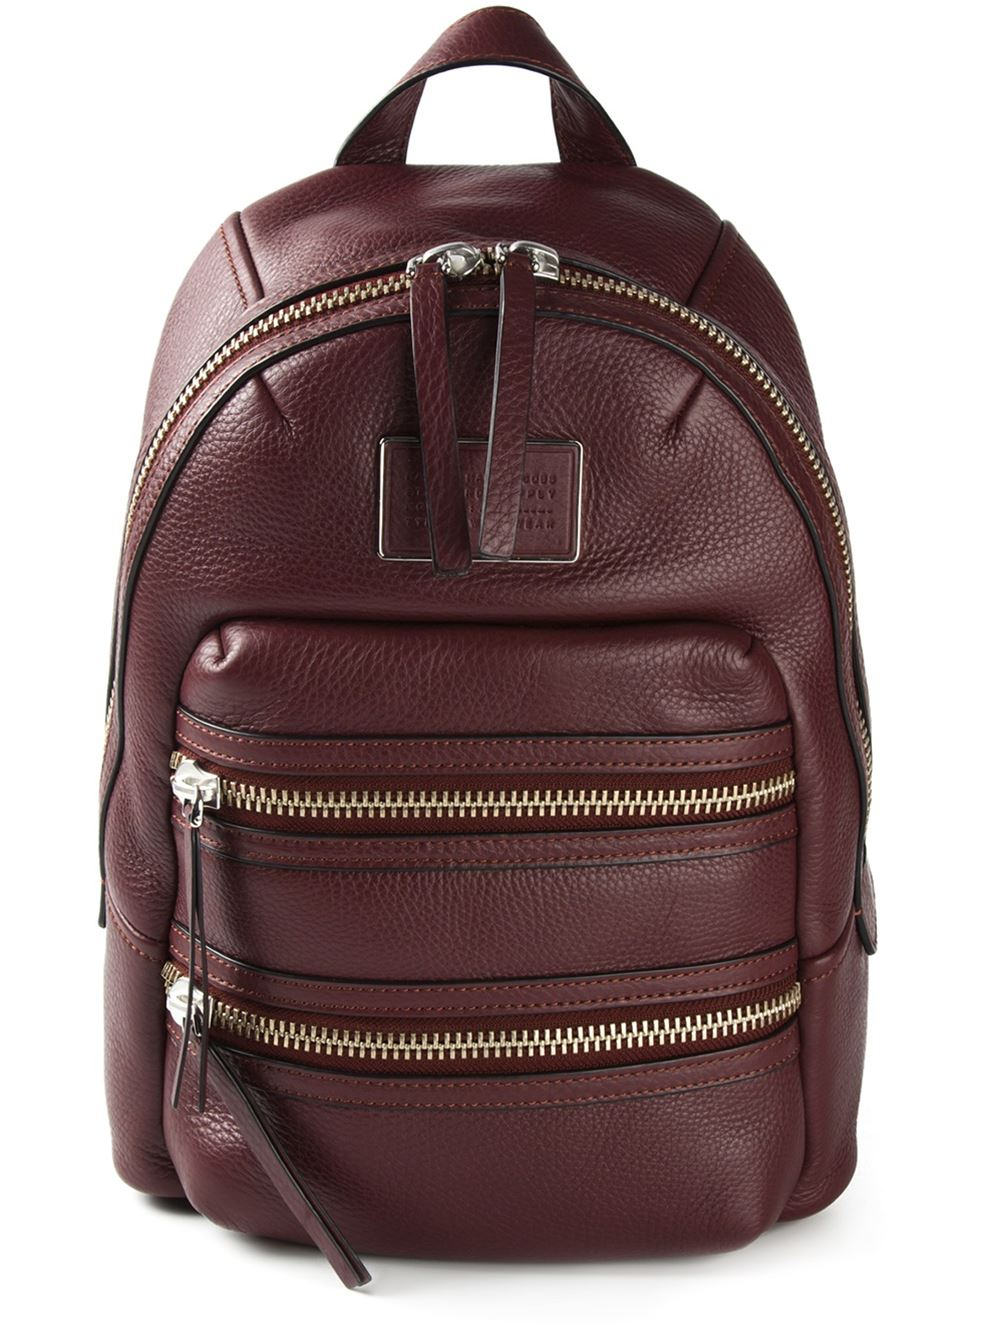 lyst marc by marc jacobs domo biker backpack in brown. Black Bedroom Furniture Sets. Home Design Ideas